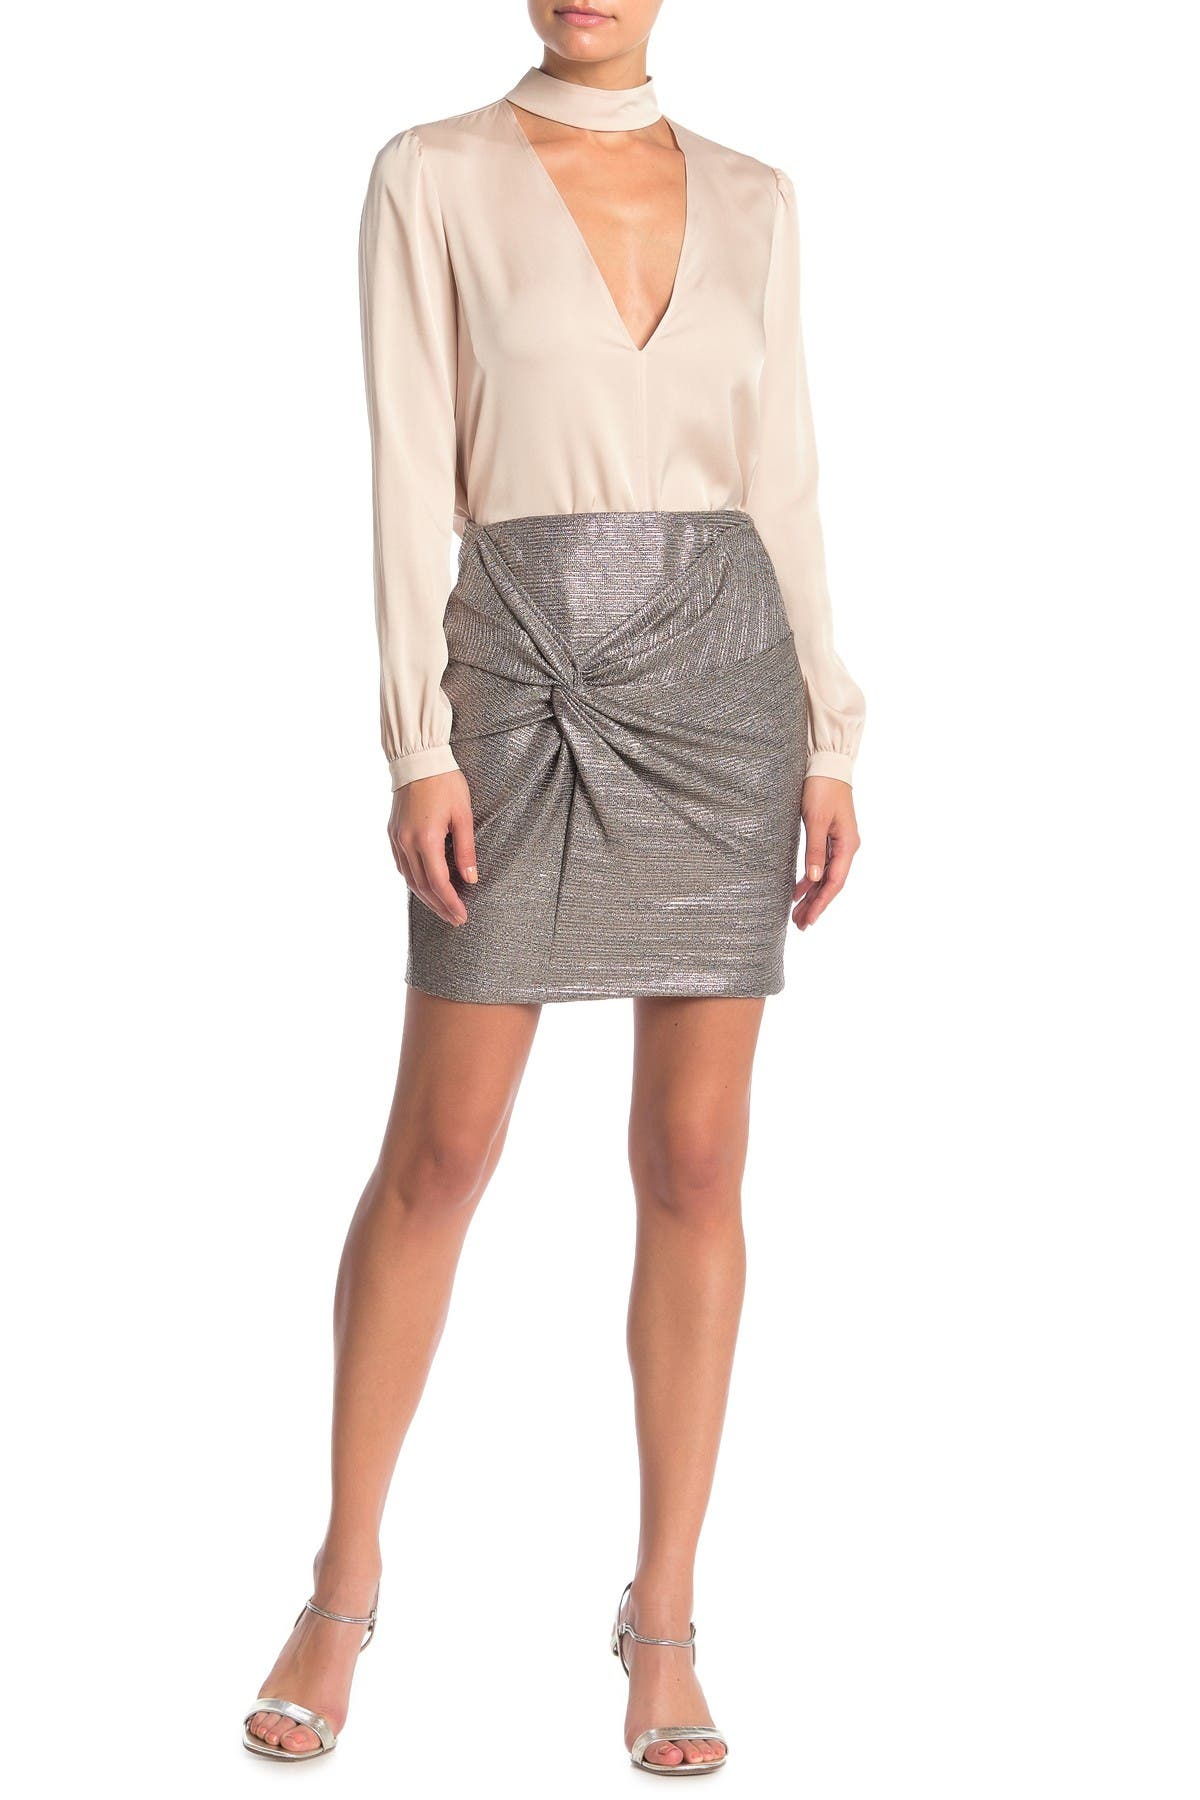 Image of Elodie Twist Front Mini Skirt